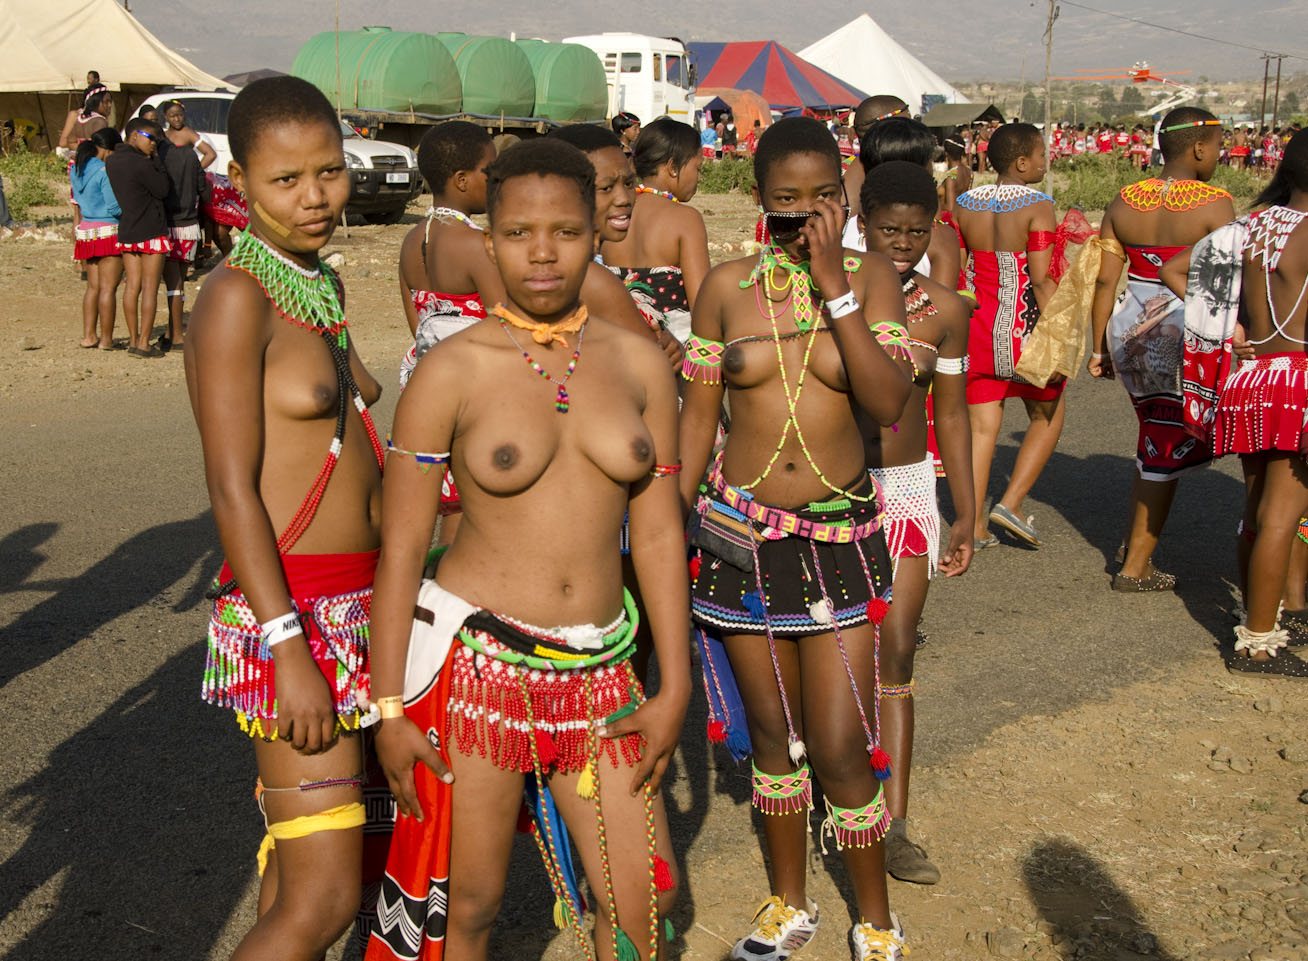 Tribe nude bathing zulu